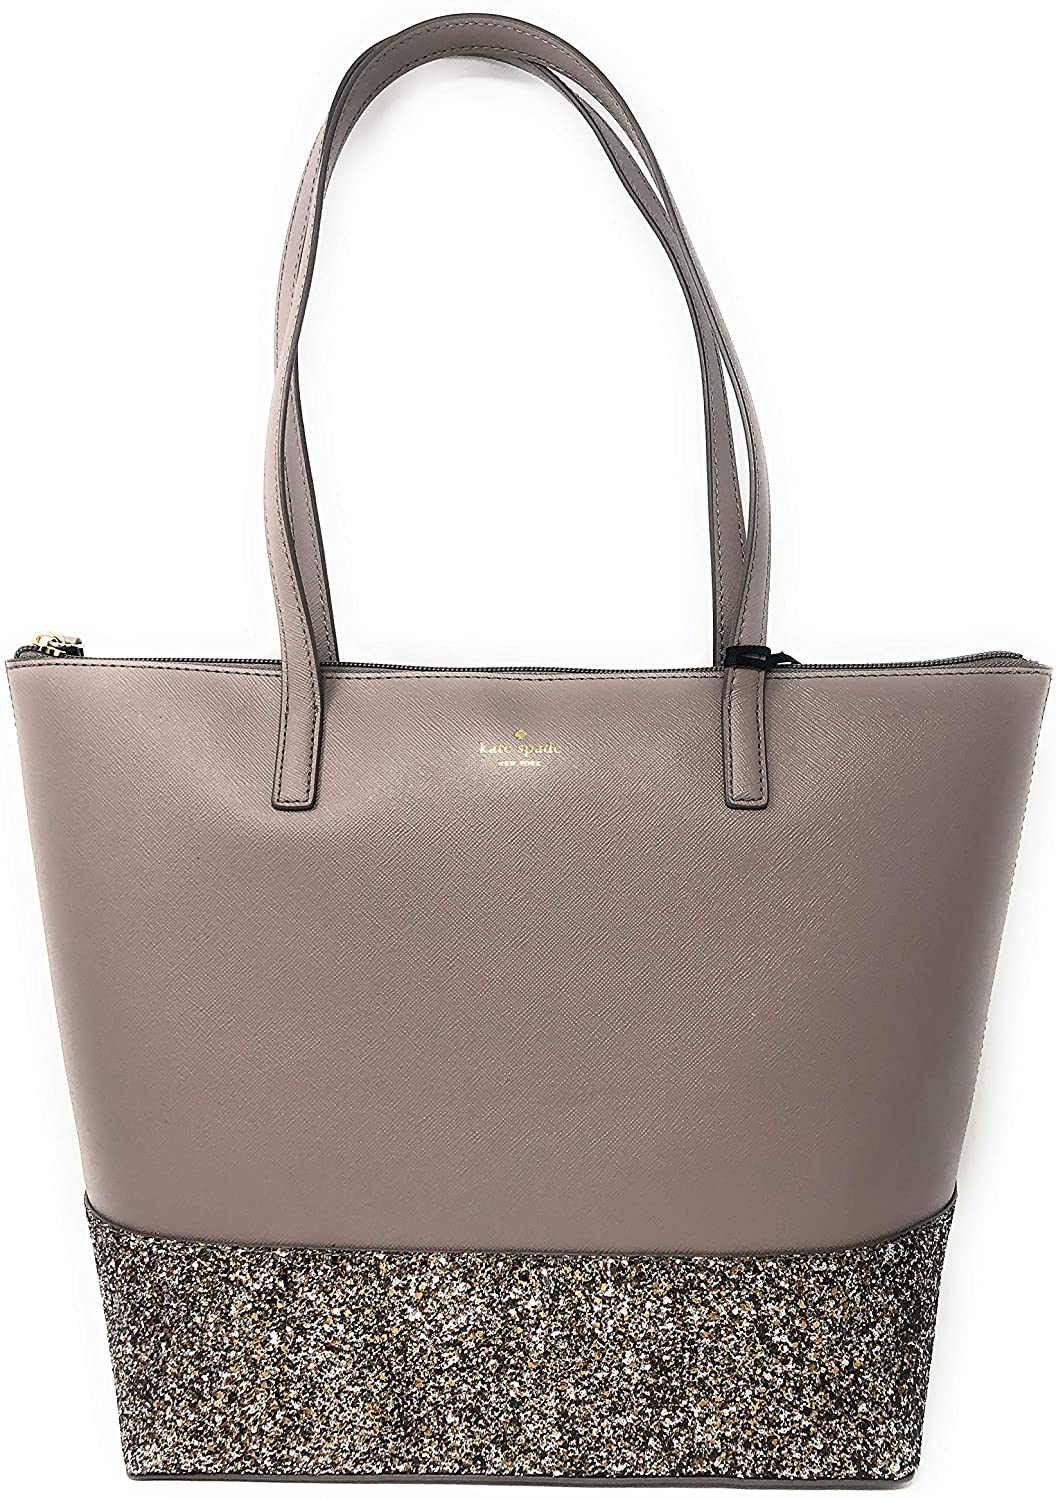 Kate Spade New York Penny Greta Court Tote Bag